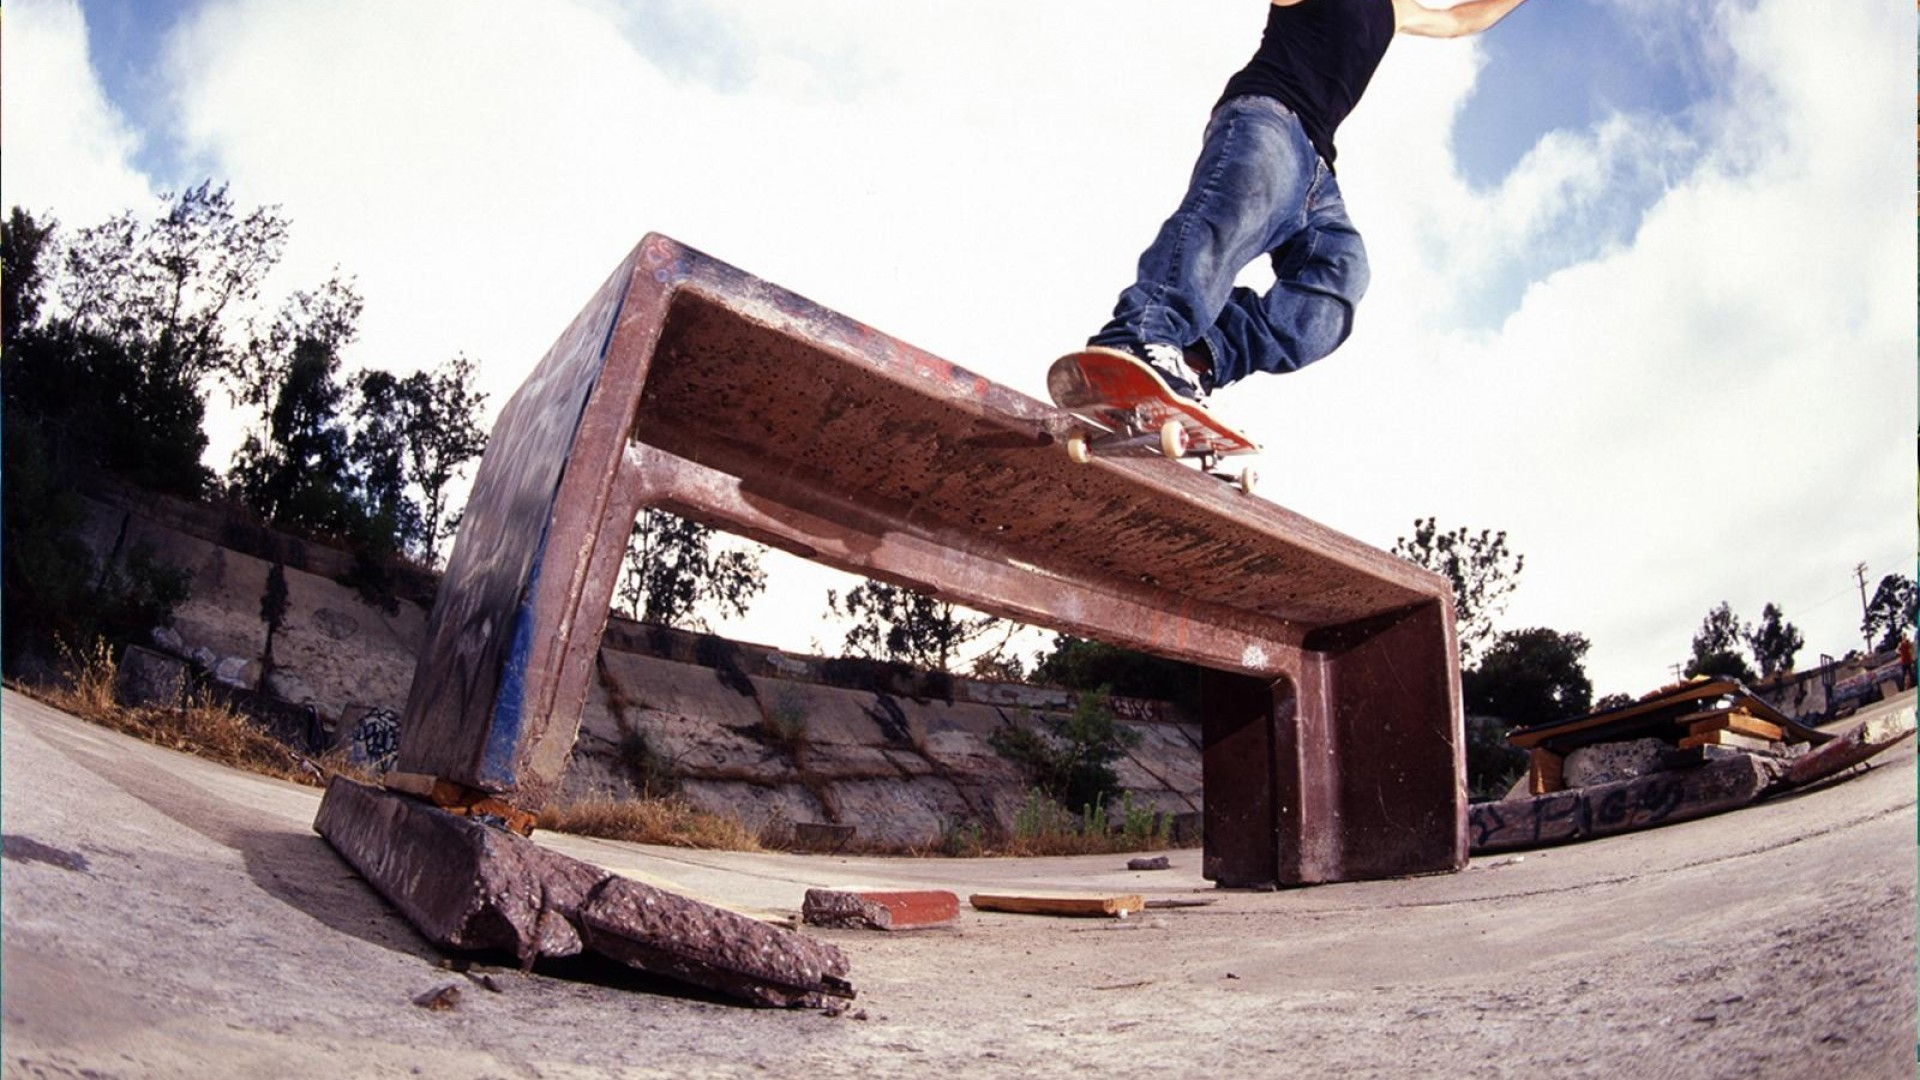 Skateboard Wallpapers IPhone Group 1920×1200 Skateboarding Wallpaper (45  Wallpapers) | Adorable Wallpapers